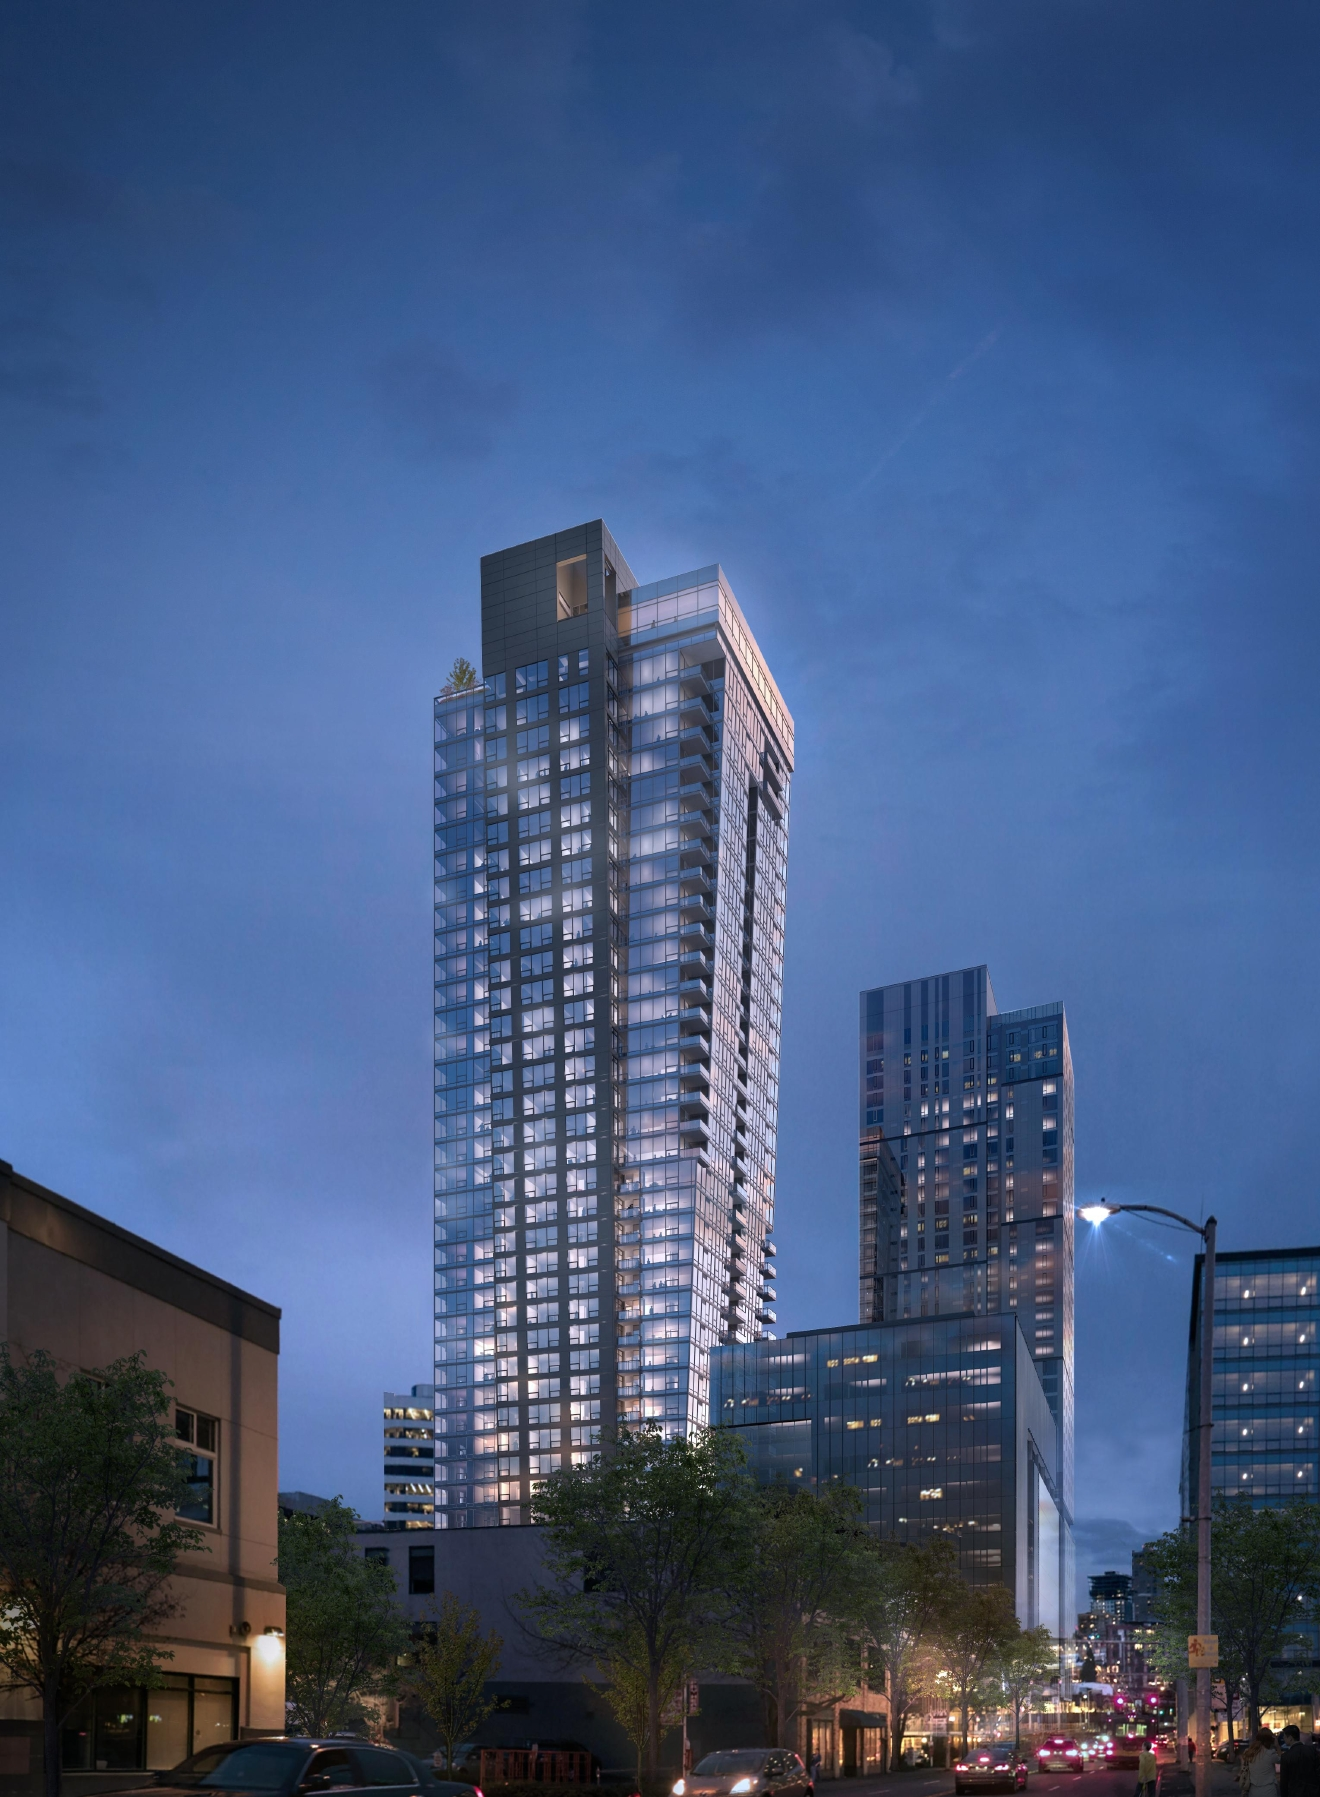 The latest addition to the Seattle high-rise scene is the Kinects, a 41-story tower (currently under construction) that is now offering the option for potential residents to  customize a penthouse. (Image credit: Studio 216)